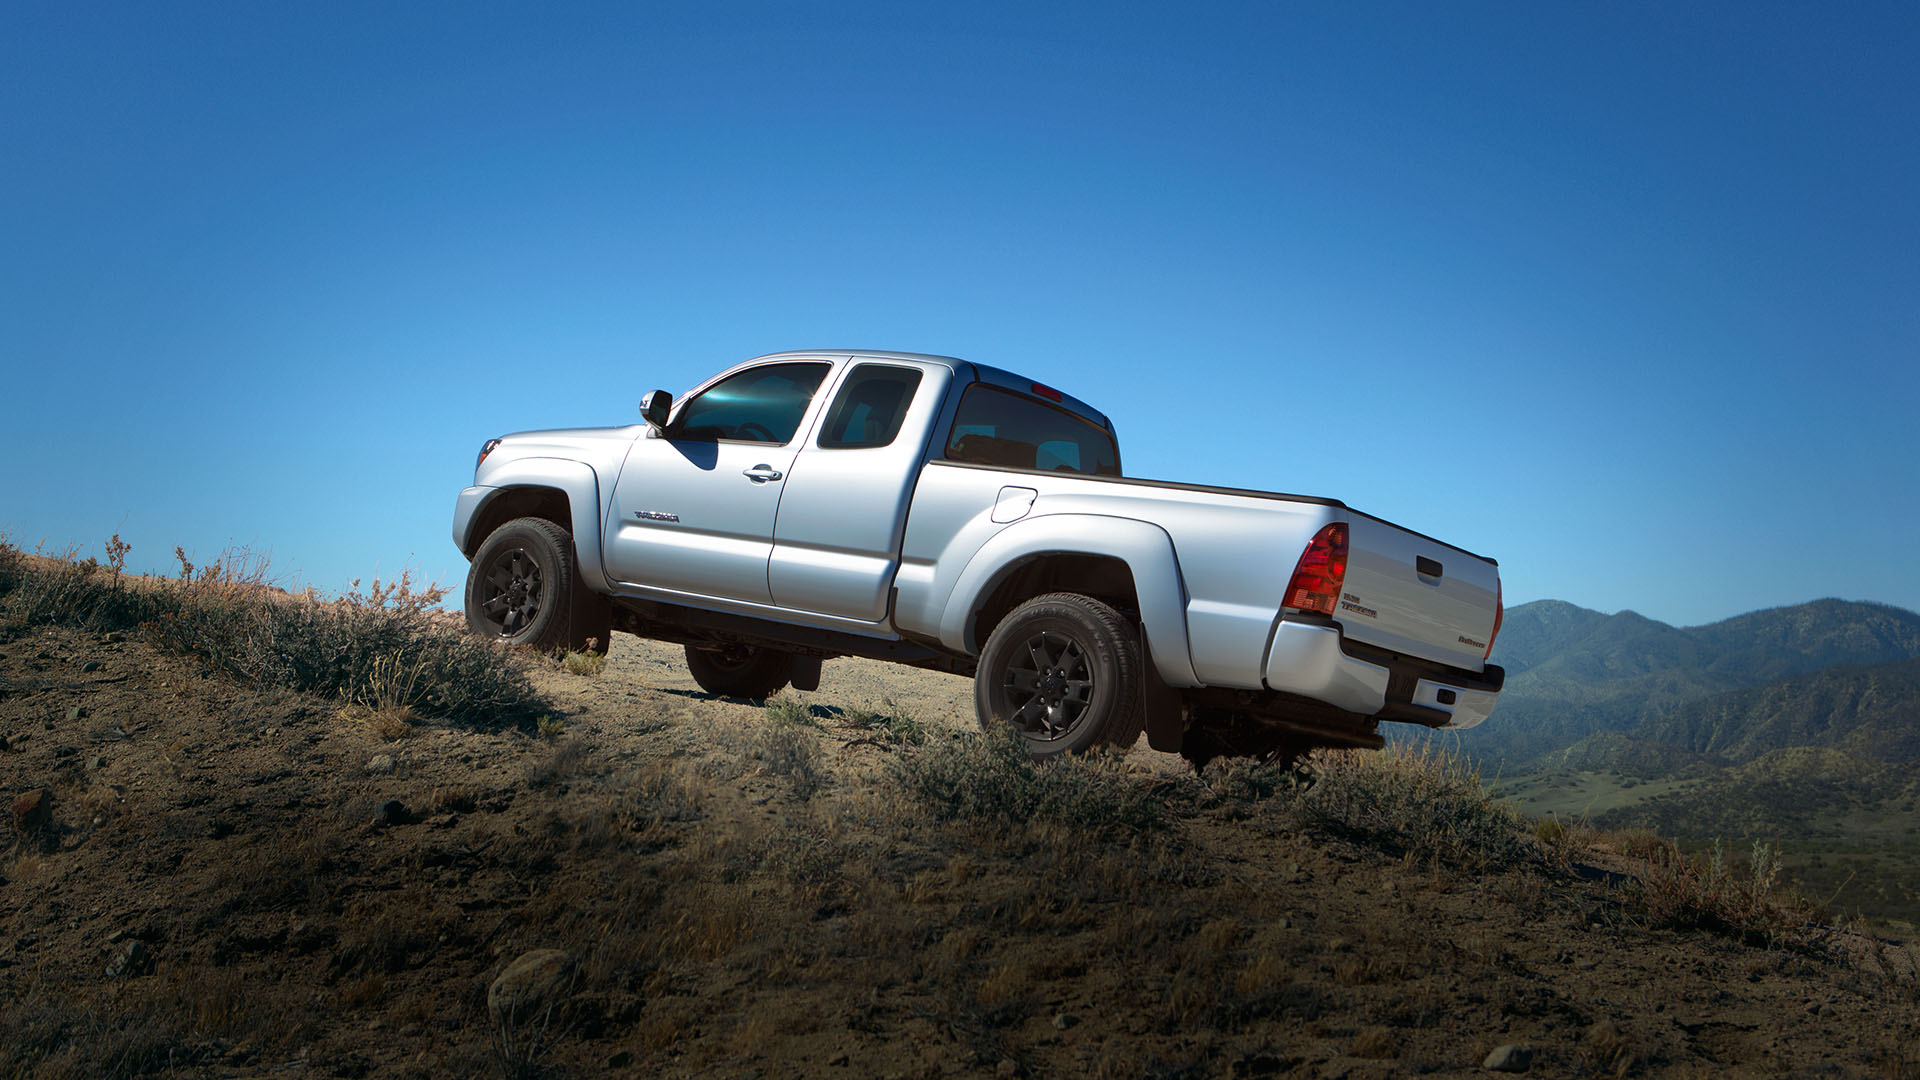 2017 Tacoma Accessories >> TOYOTA Tacoma Access Cab - 2011, 2012, 2013, 2014, 2015, 2016, 2017 - autoevolution